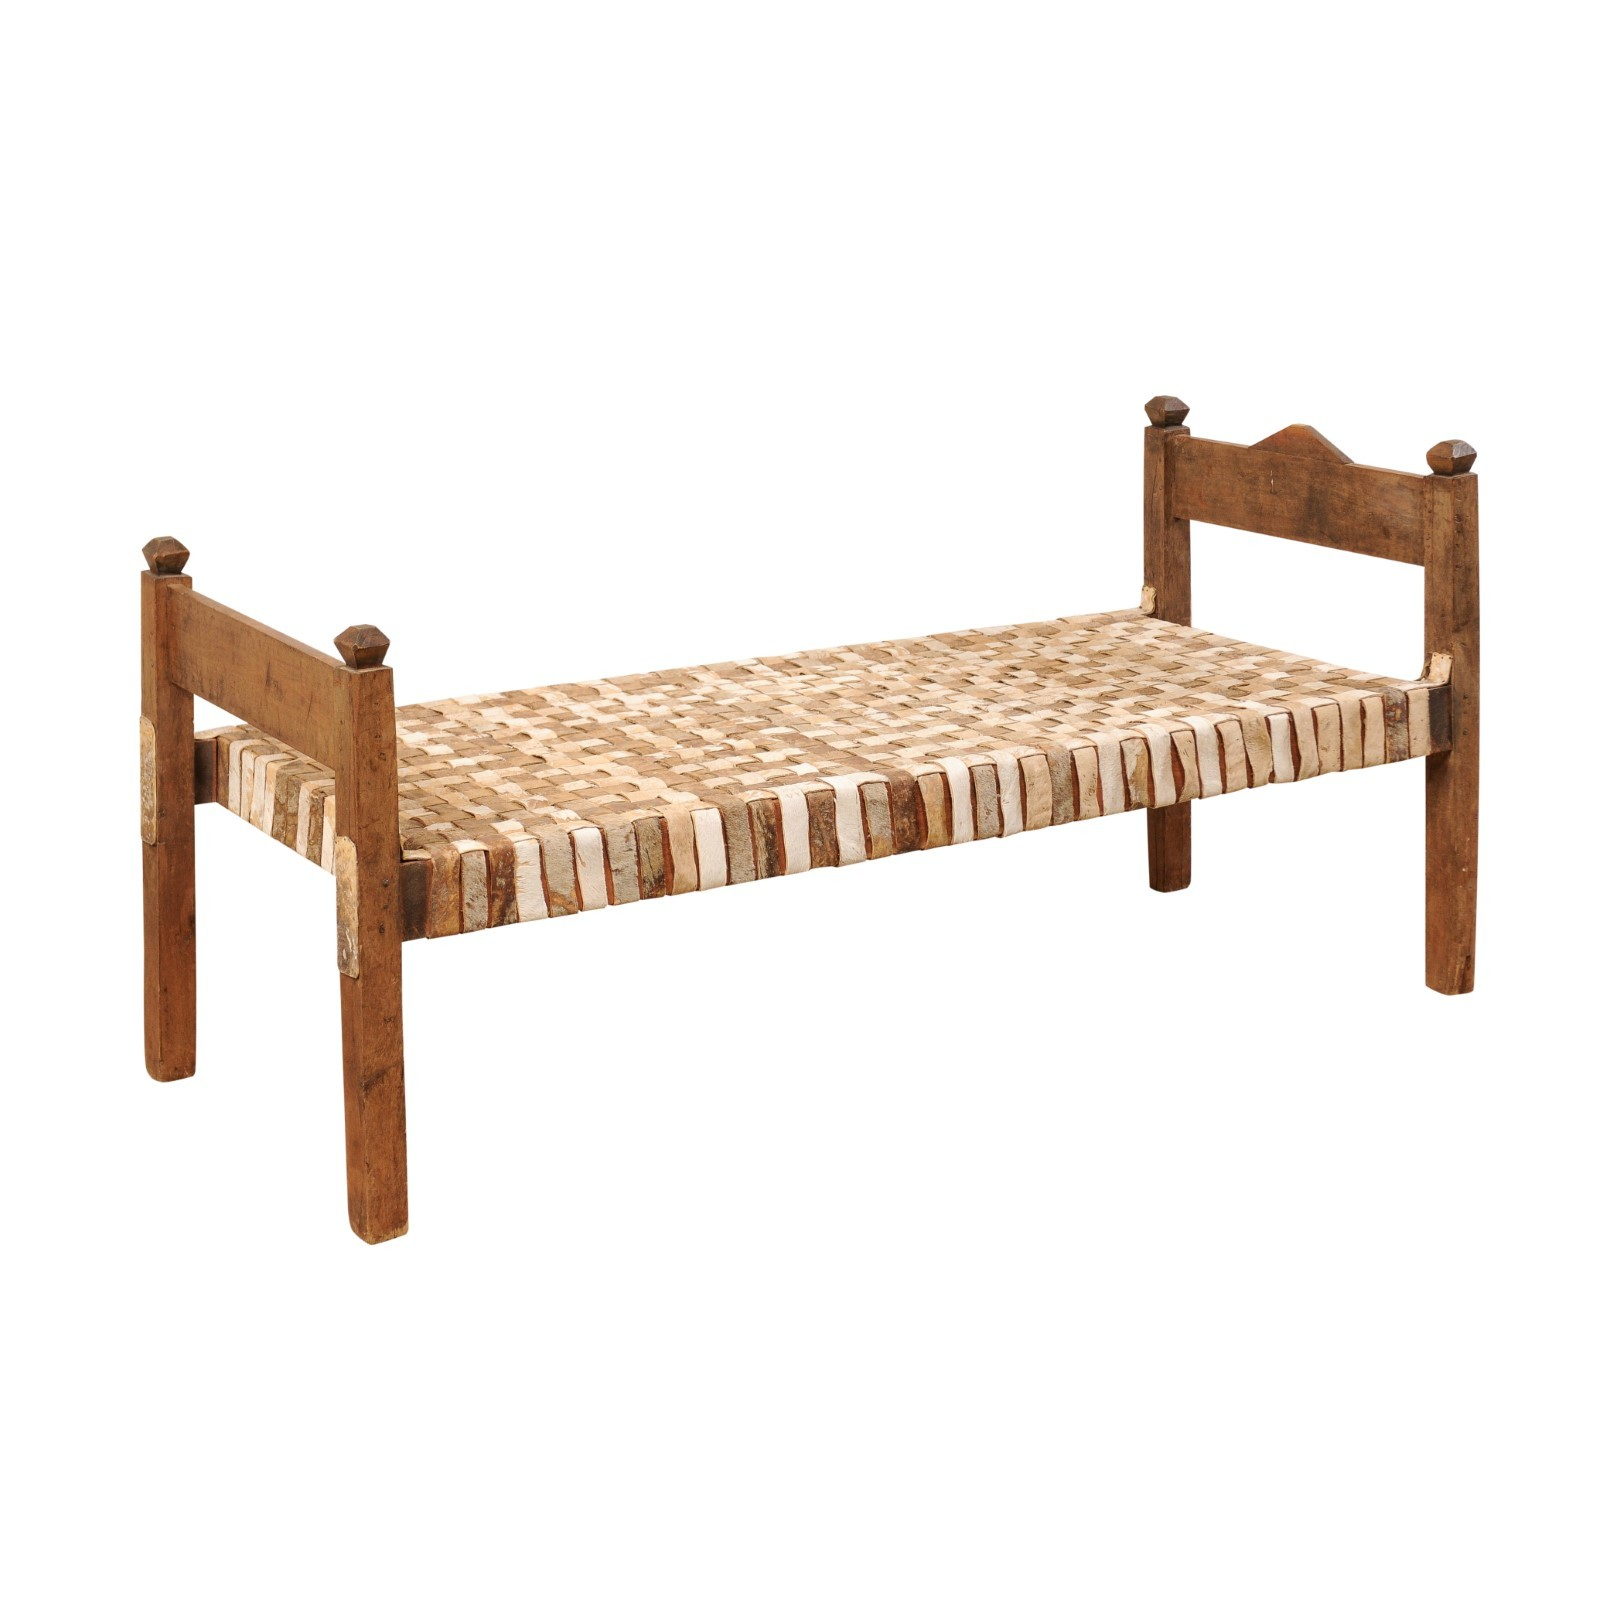 Woven Leather Wood Frame Daybed Bench 213 A Tyner Antiques